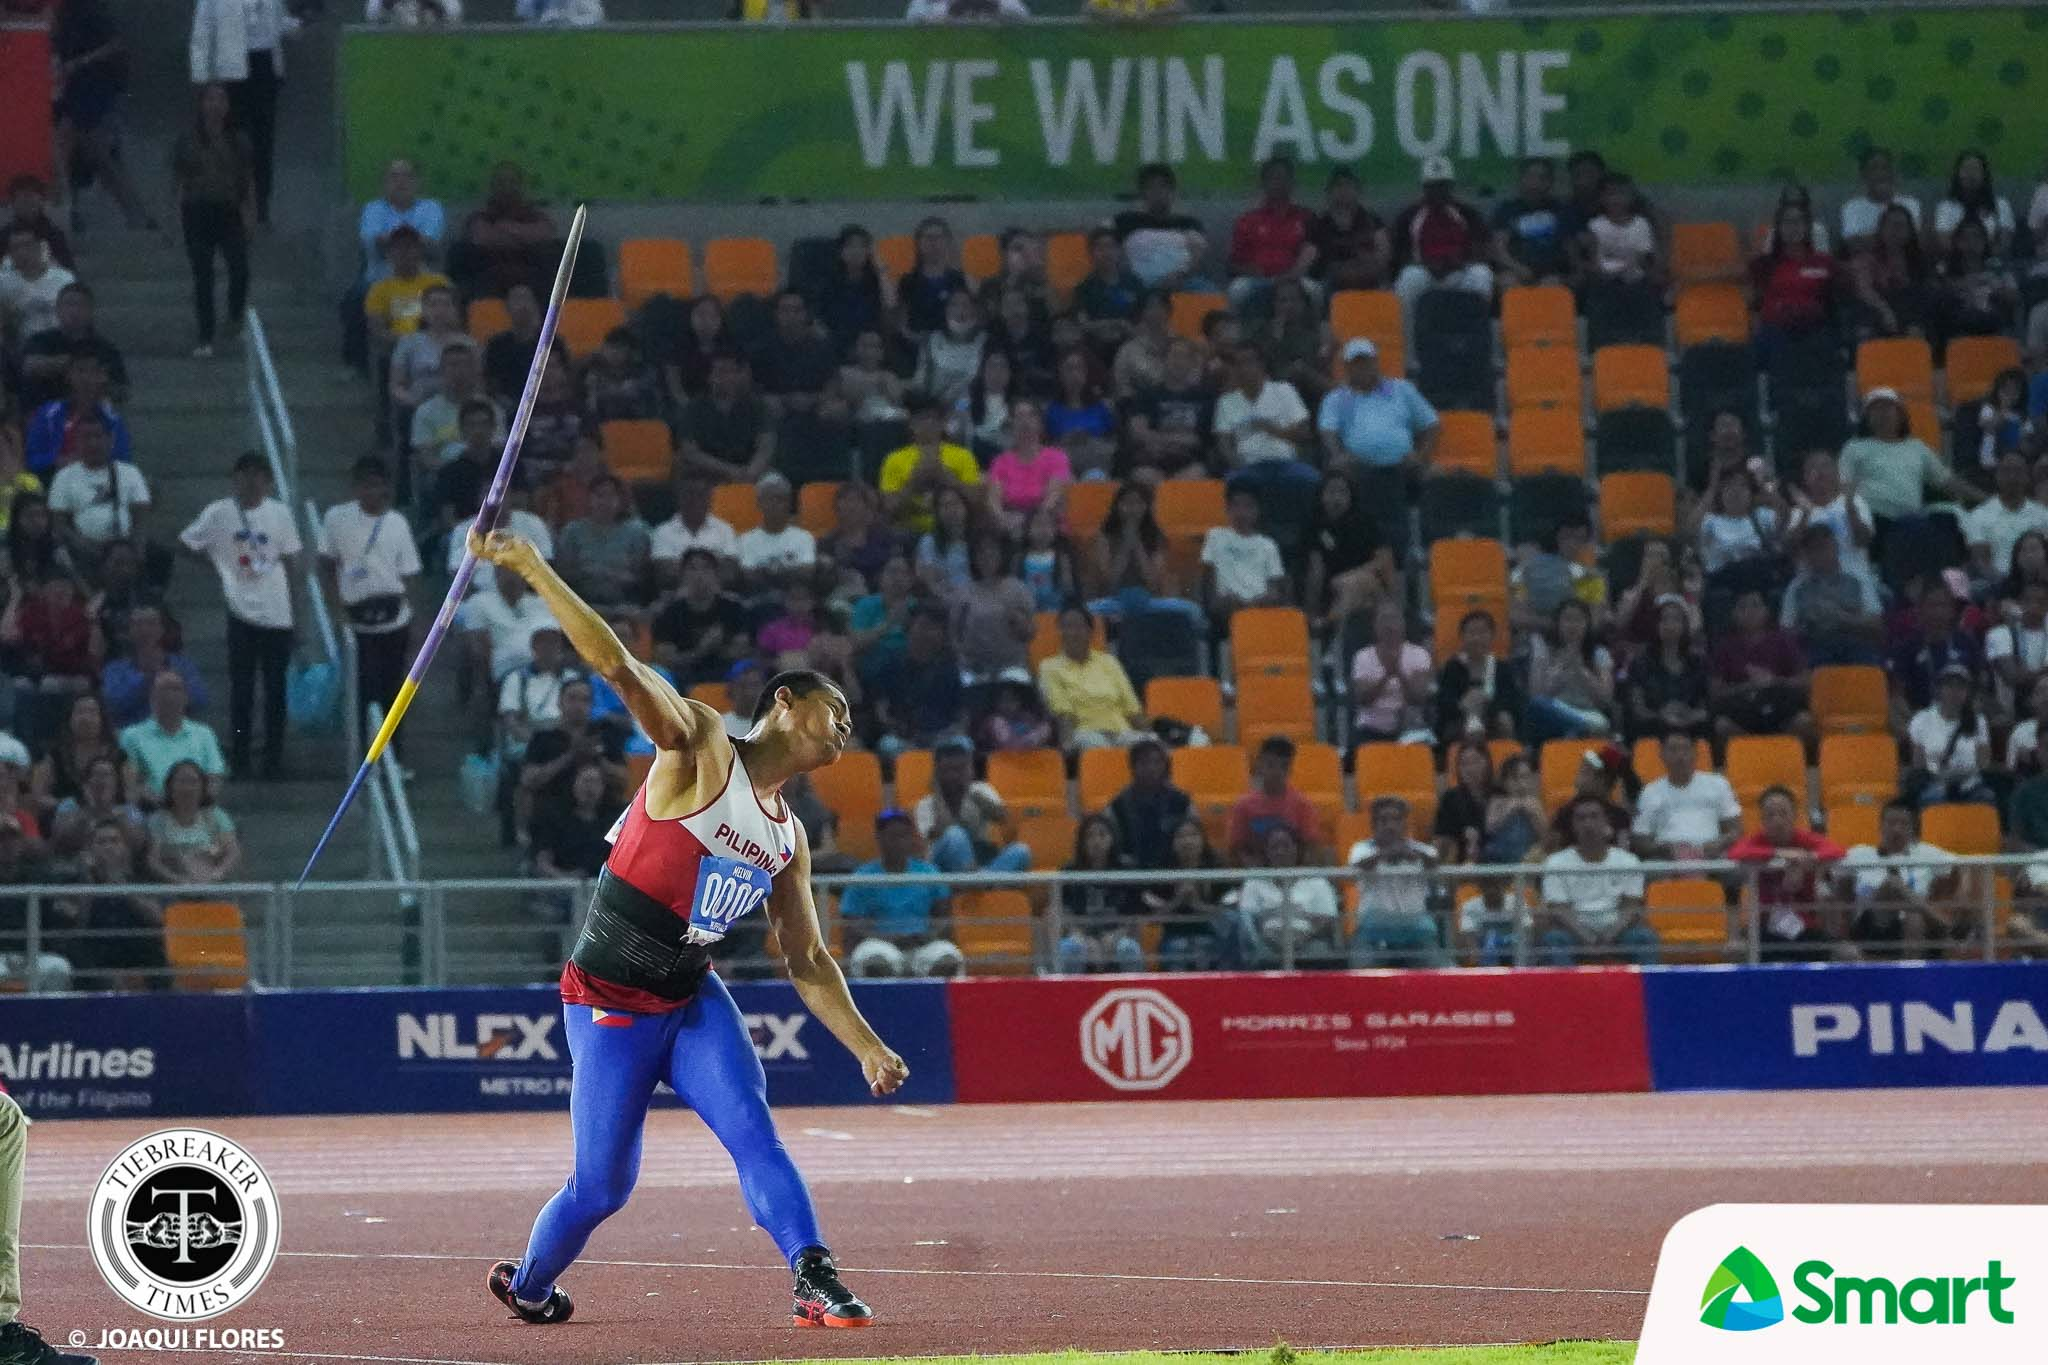 Tiebreaker Times Melvin Calano nails gold in SEAG javelin throw 2019 SEA Games News Track & Field  Melvin Calano 2019 SEA Games - Athletics 2019 SEA Games